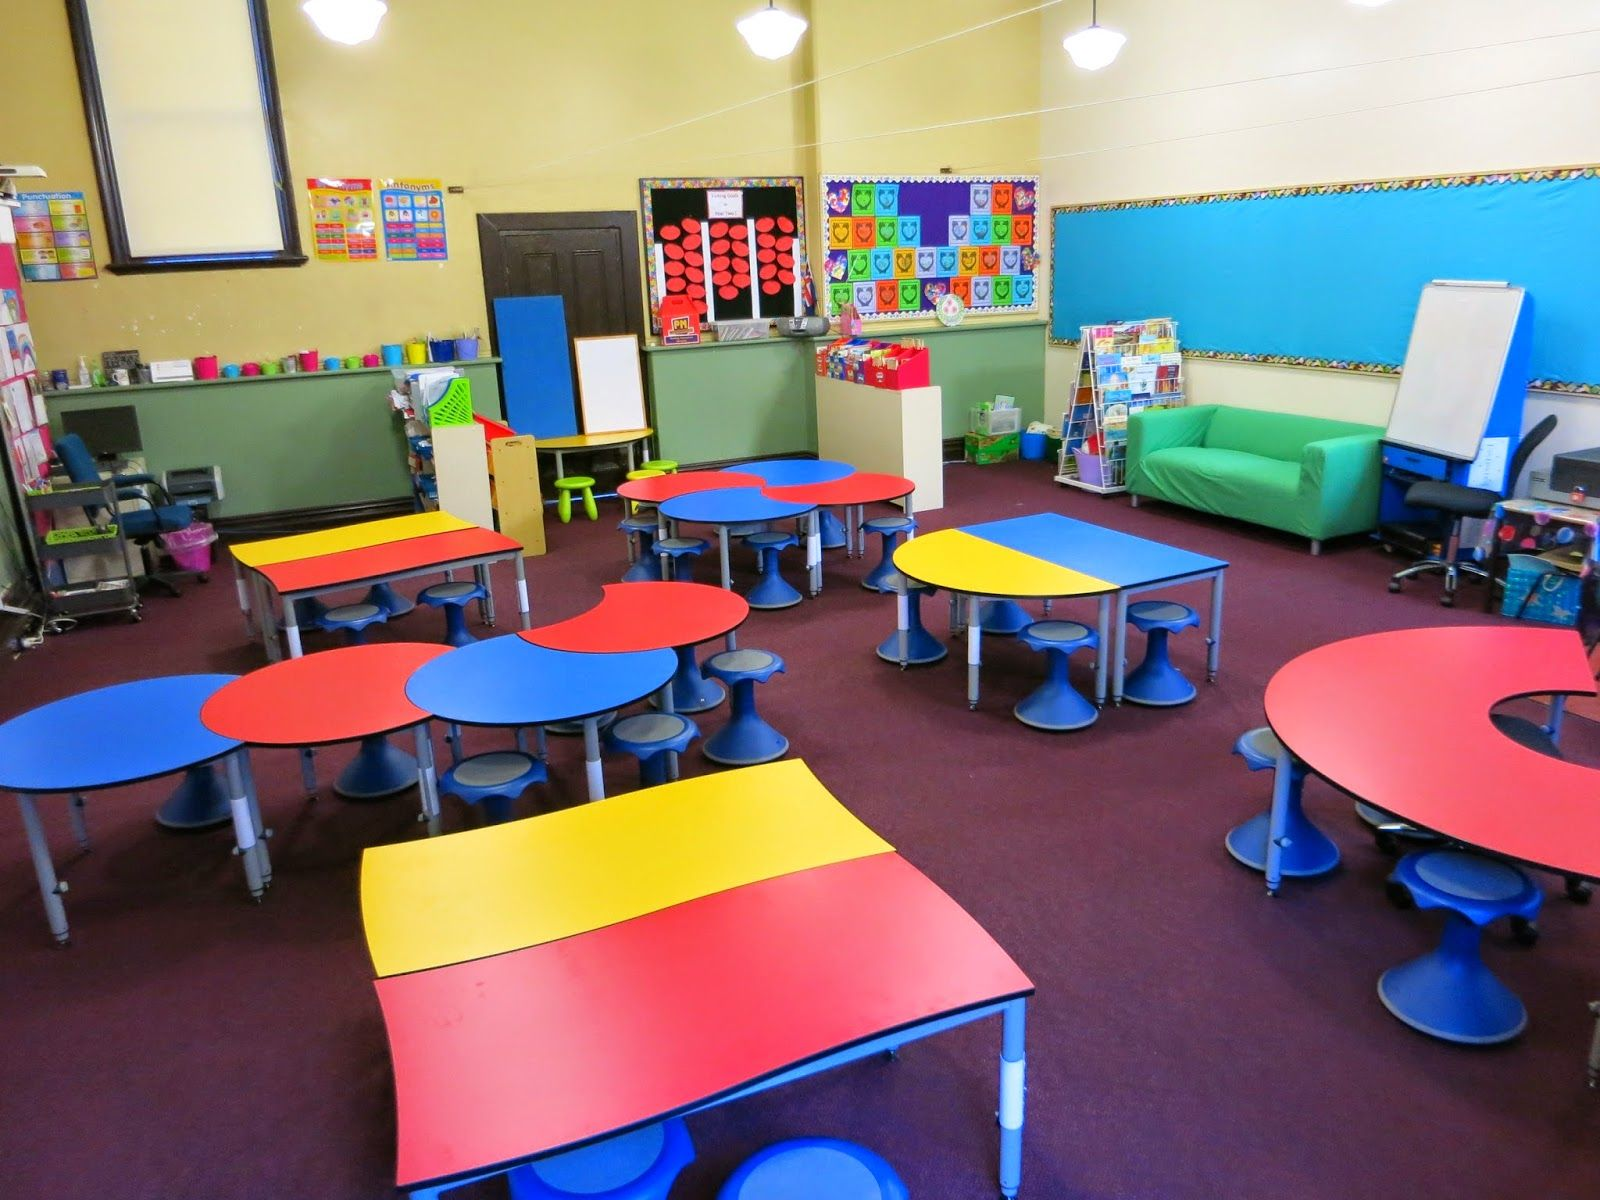 Daycare Tables And Chairs Free Church Our Year 2 Classroom Changed Into A 21st Century Learning